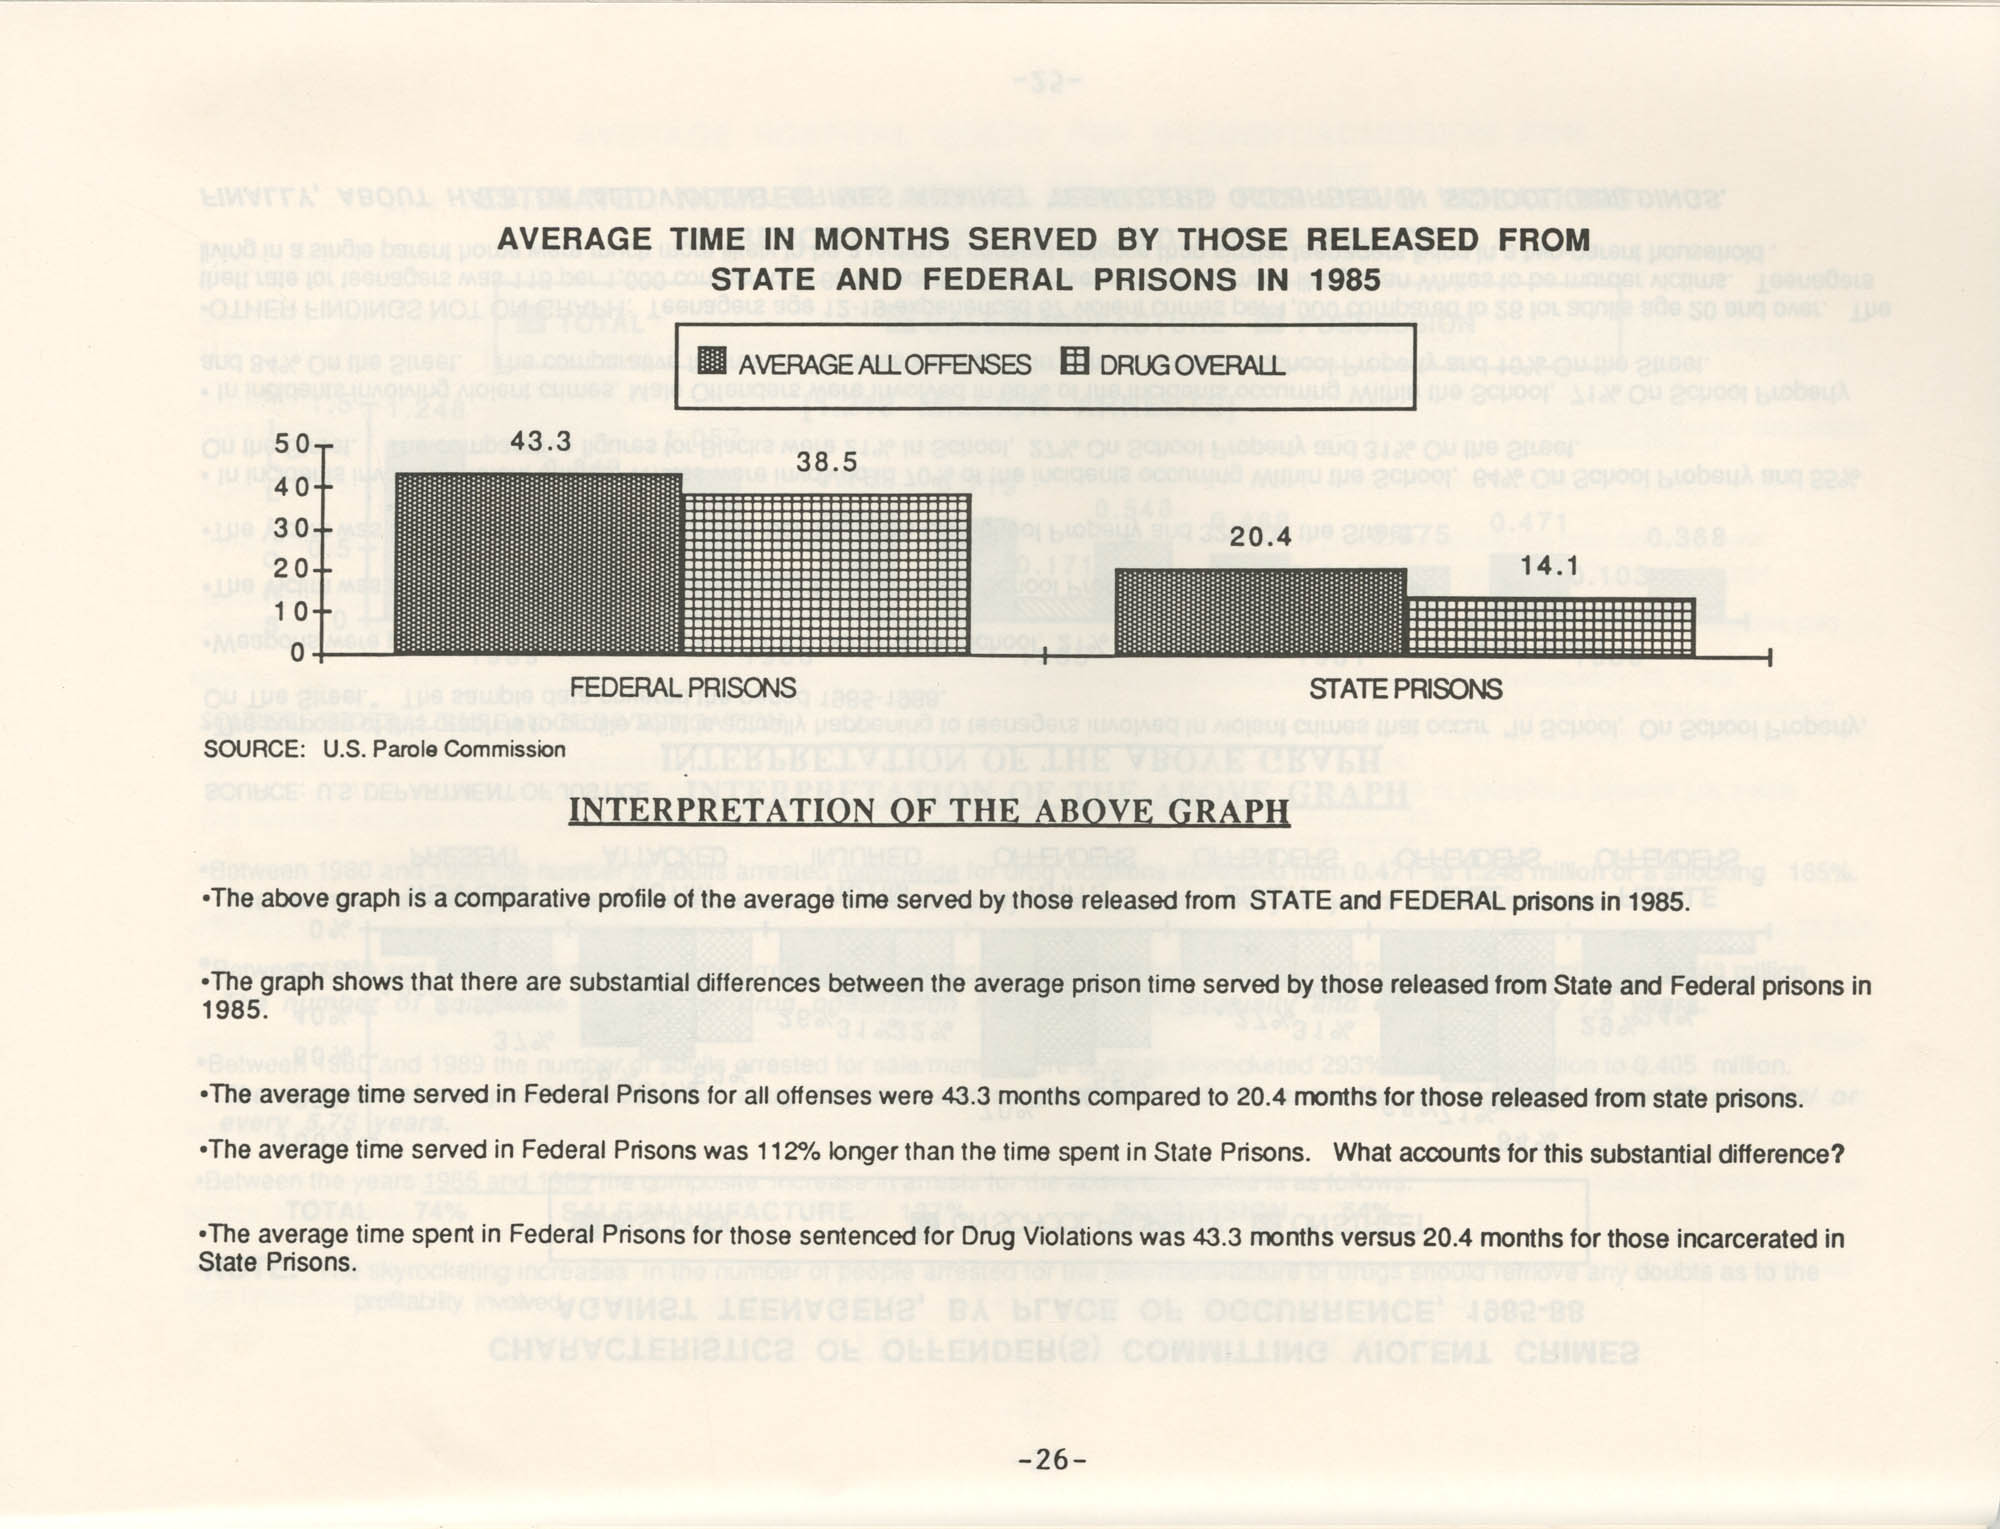 Crime and Criminal Activities in the U.S.A., NAACP National Board of Directors, Page 26